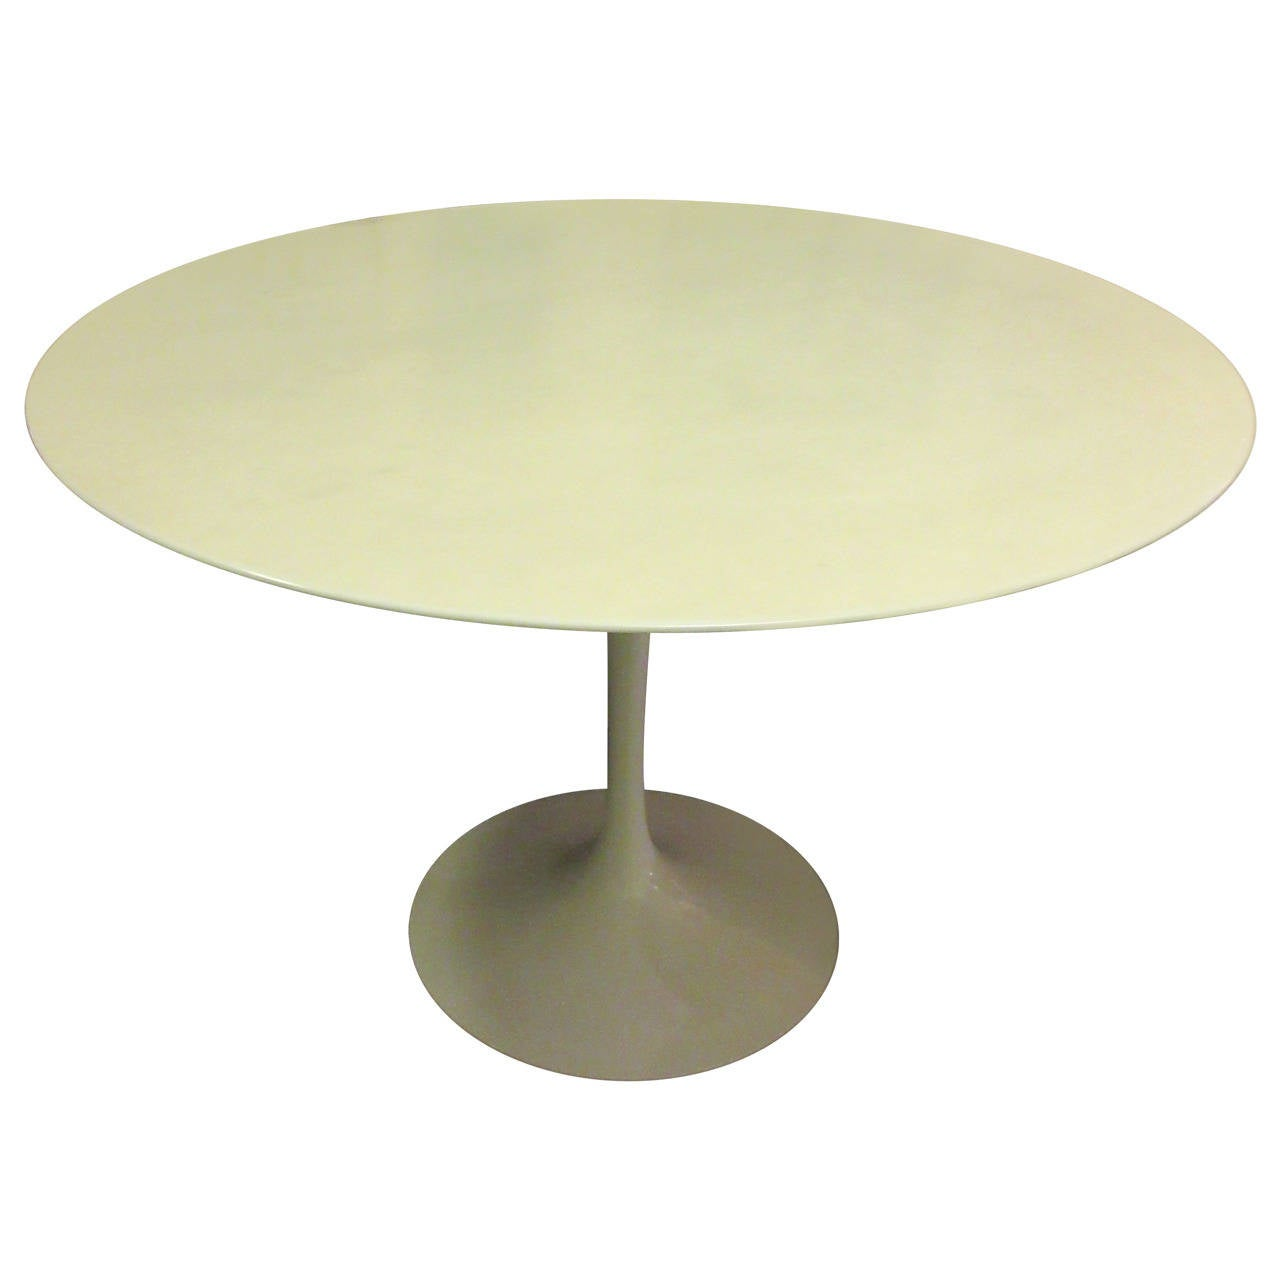 Eero Saarinen For Knoll Marble Tulip Table At 1stdibs